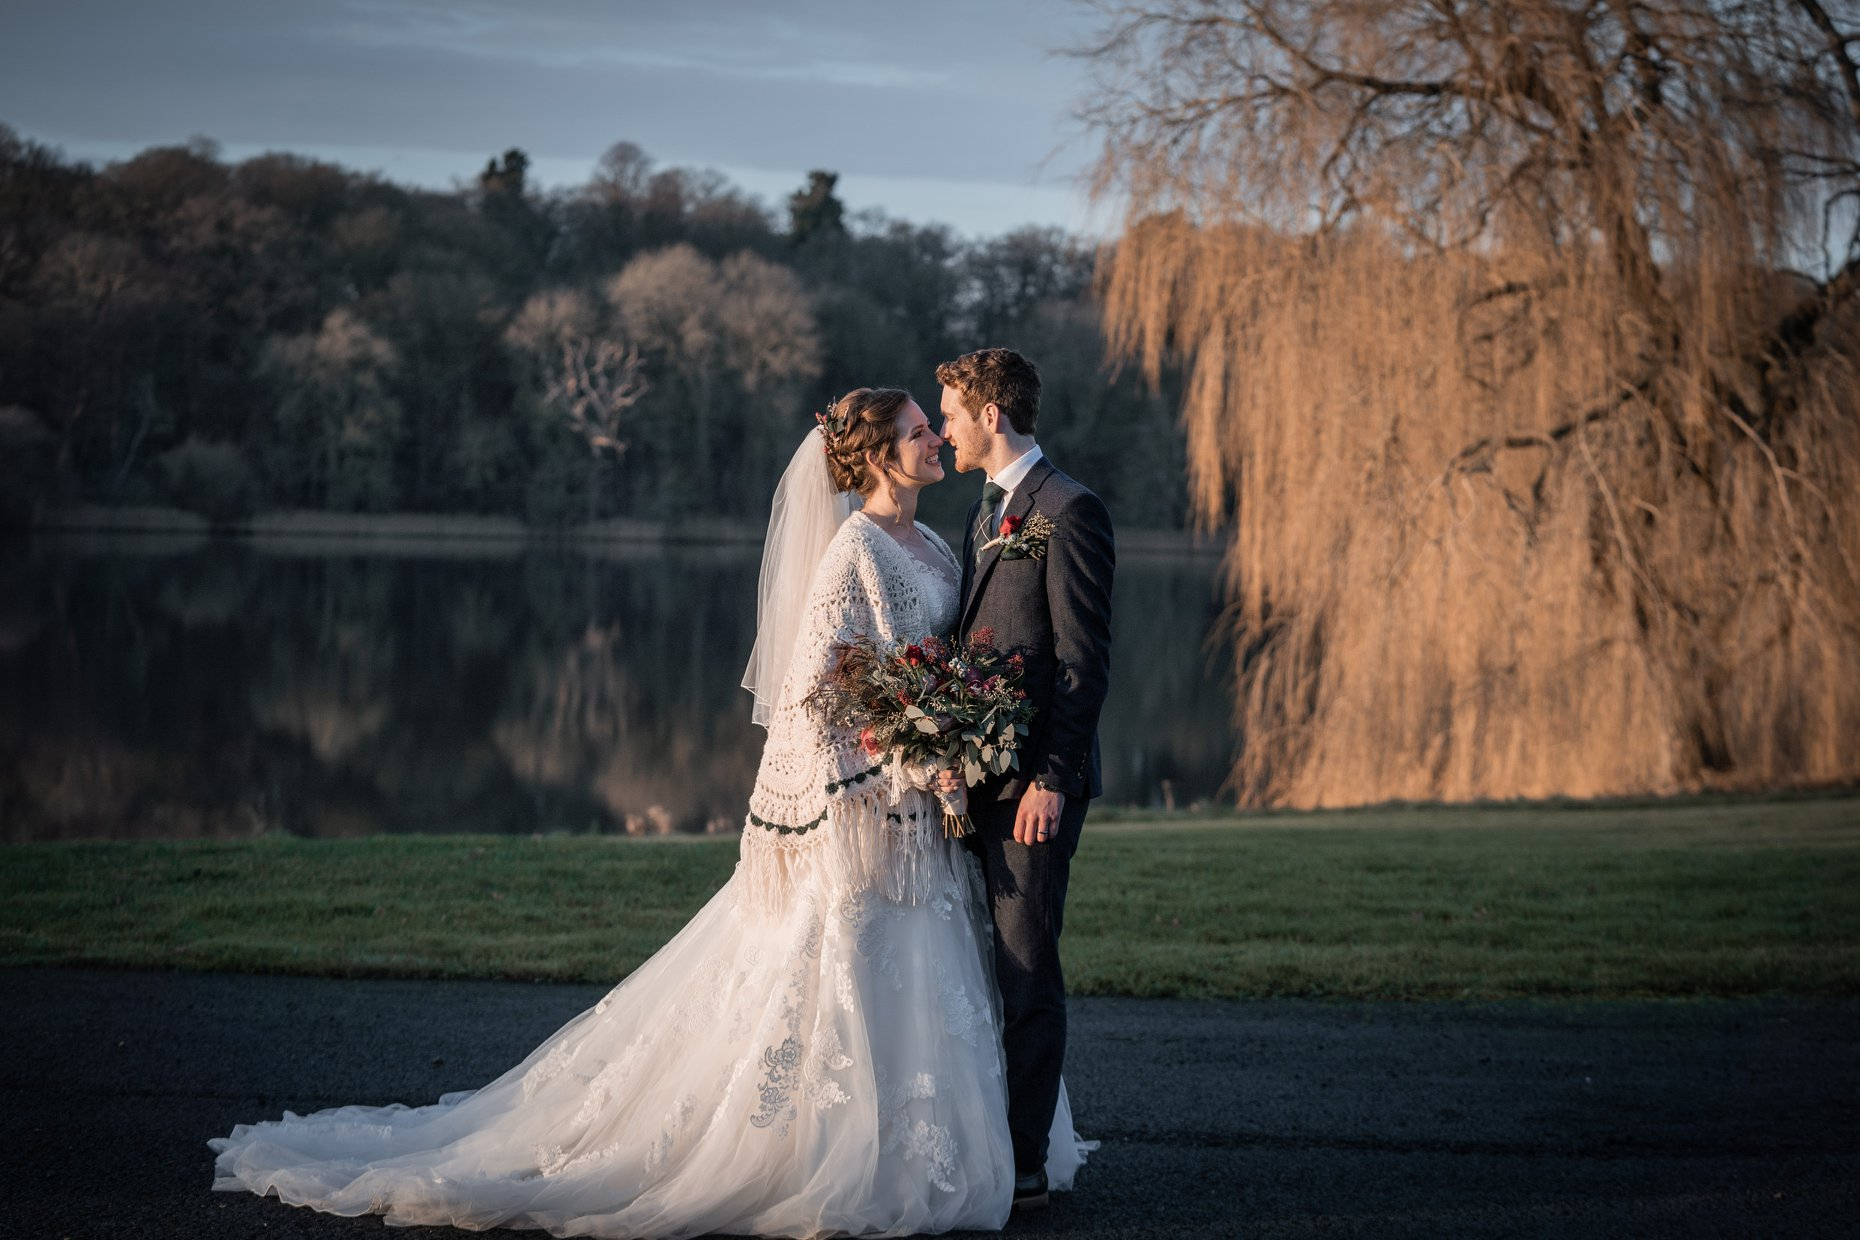 Outdoor winter weddings at Combermere Abbey